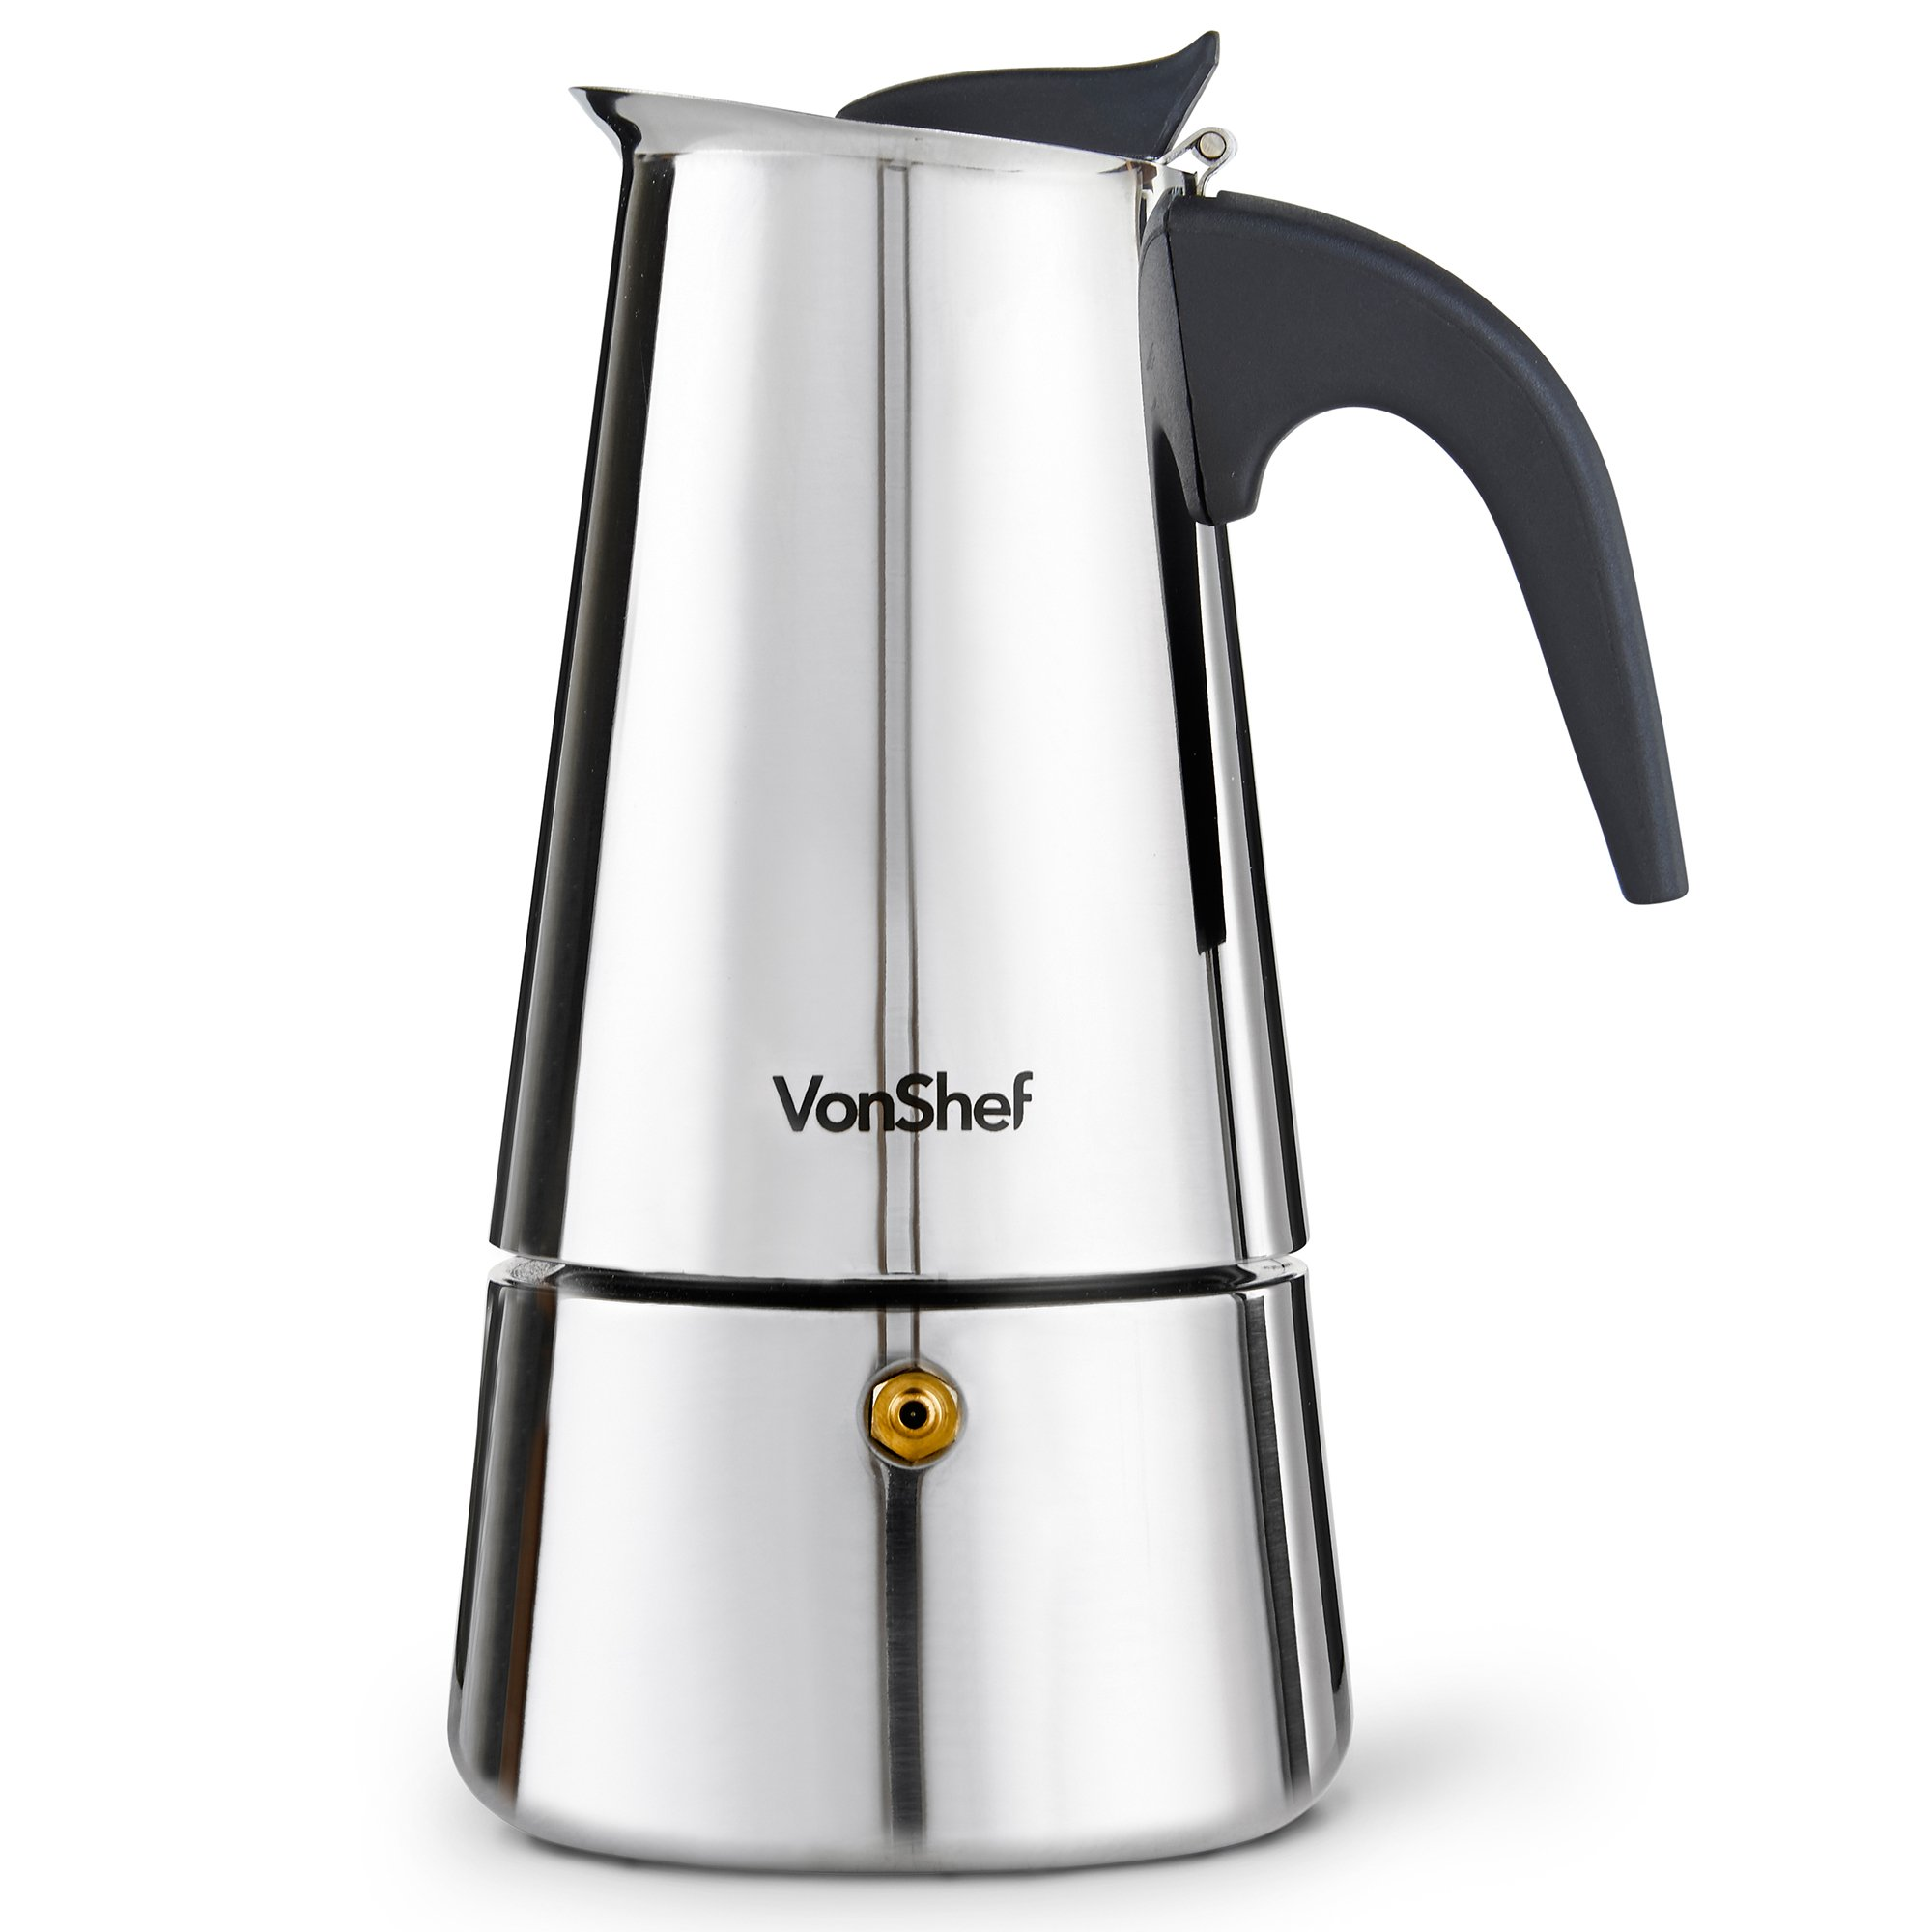 VonShef Stovetop Espresso Coffee Maker with 4 Glass Demitasse Cups, Stainless Steel, 6 Cup